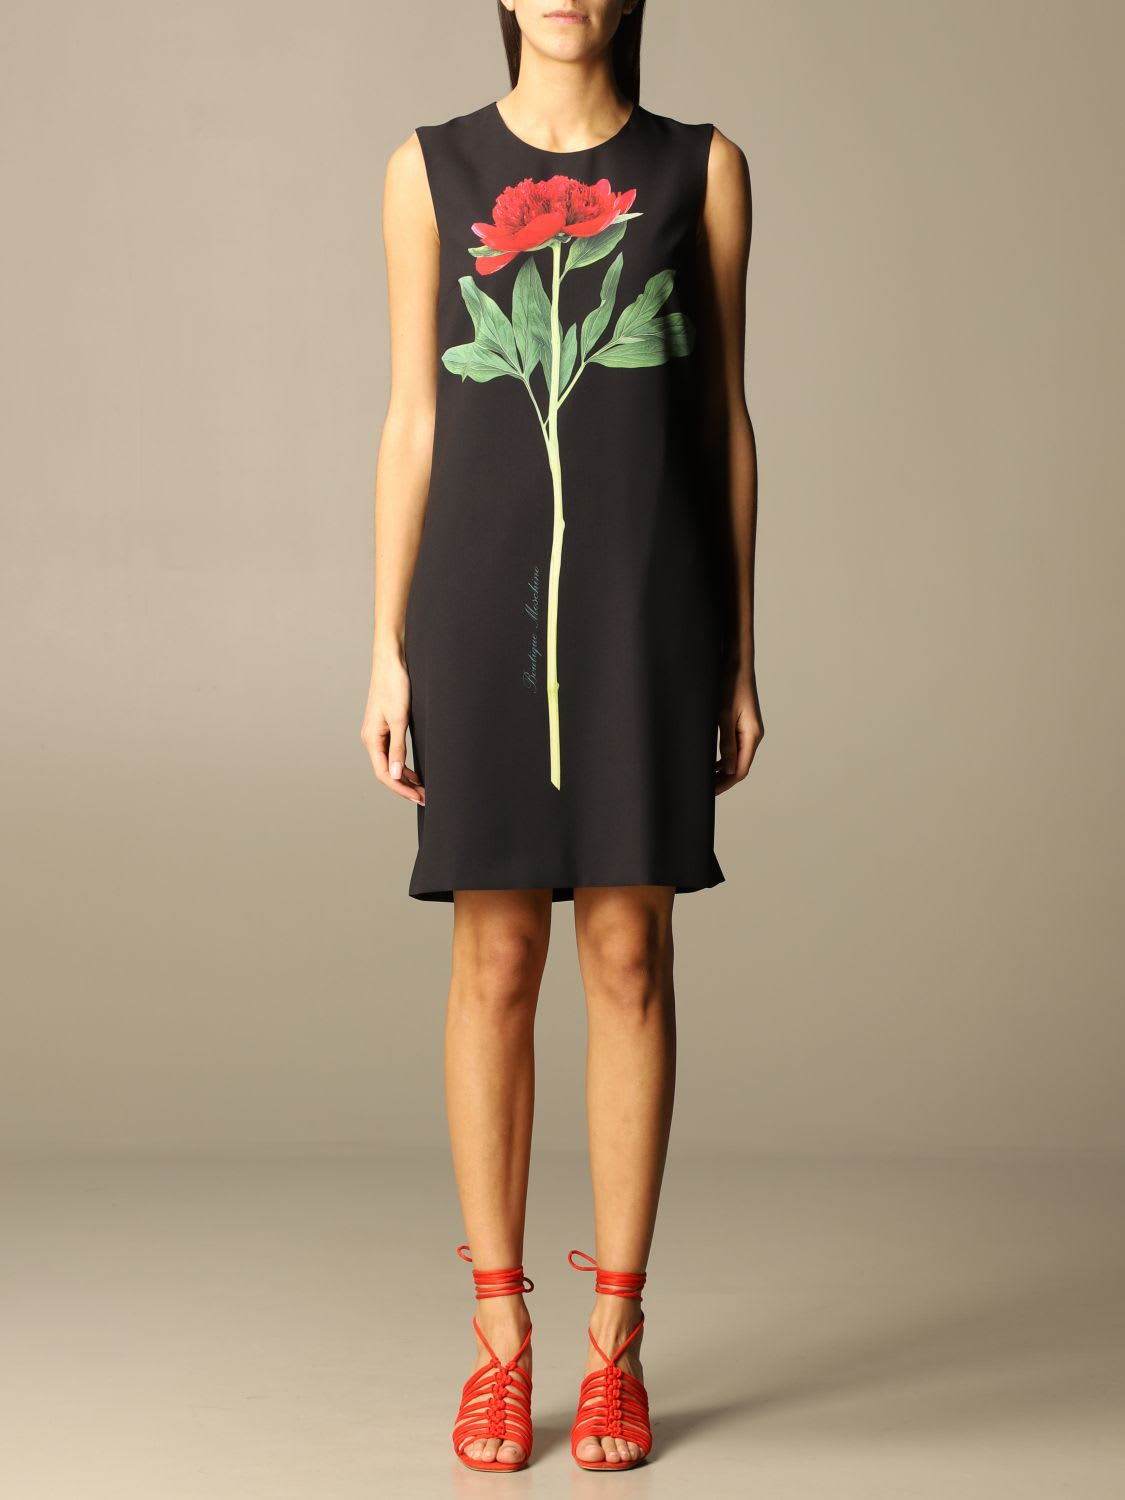 Boutique Moschino Dress Moschino Boutique Short Dress In Viscose With Flower Print